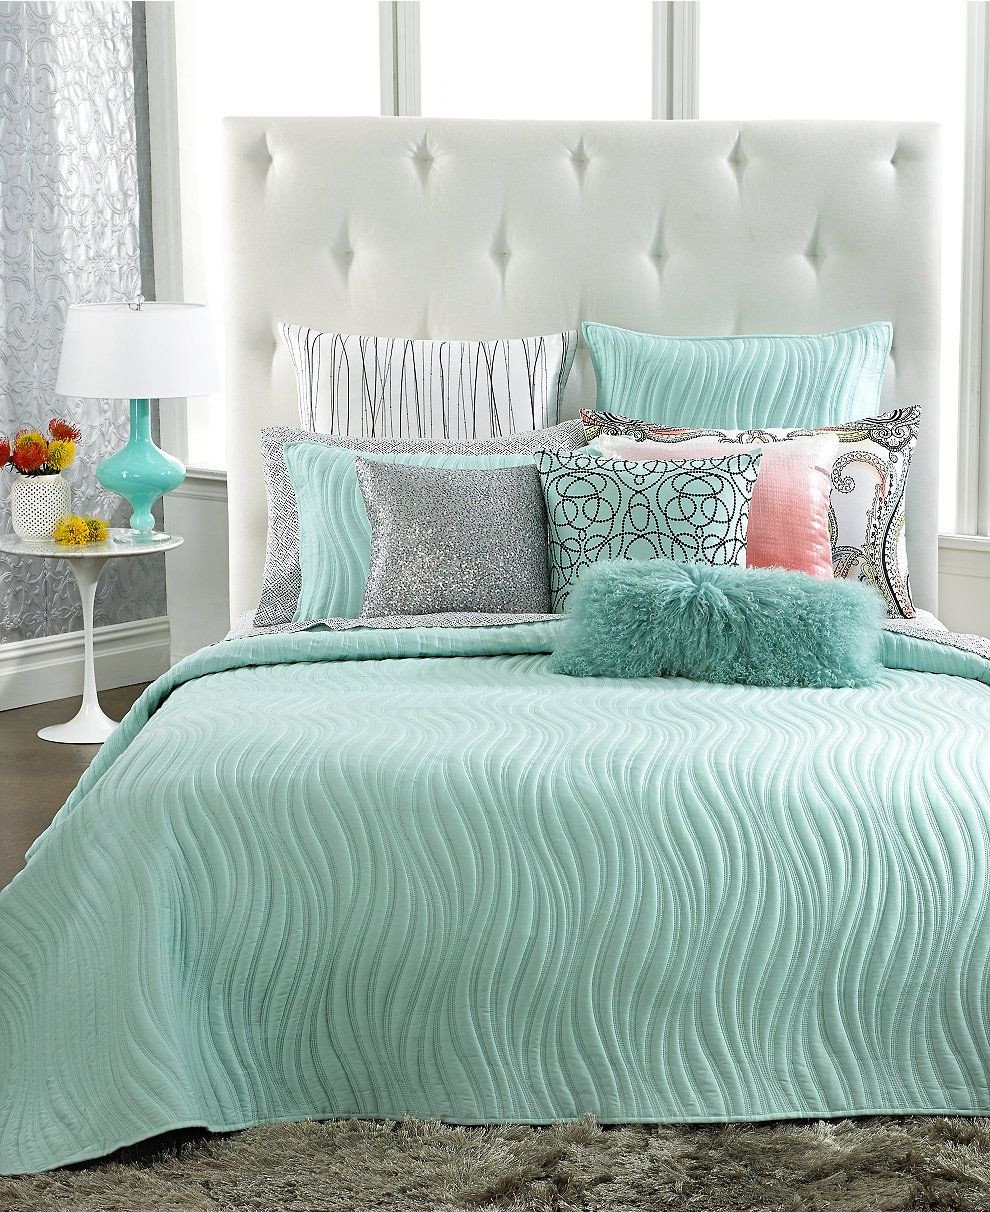 Tiffany Blue Bedroom Ideas Luxury Inc International Concepts Marni Coverlet Collection